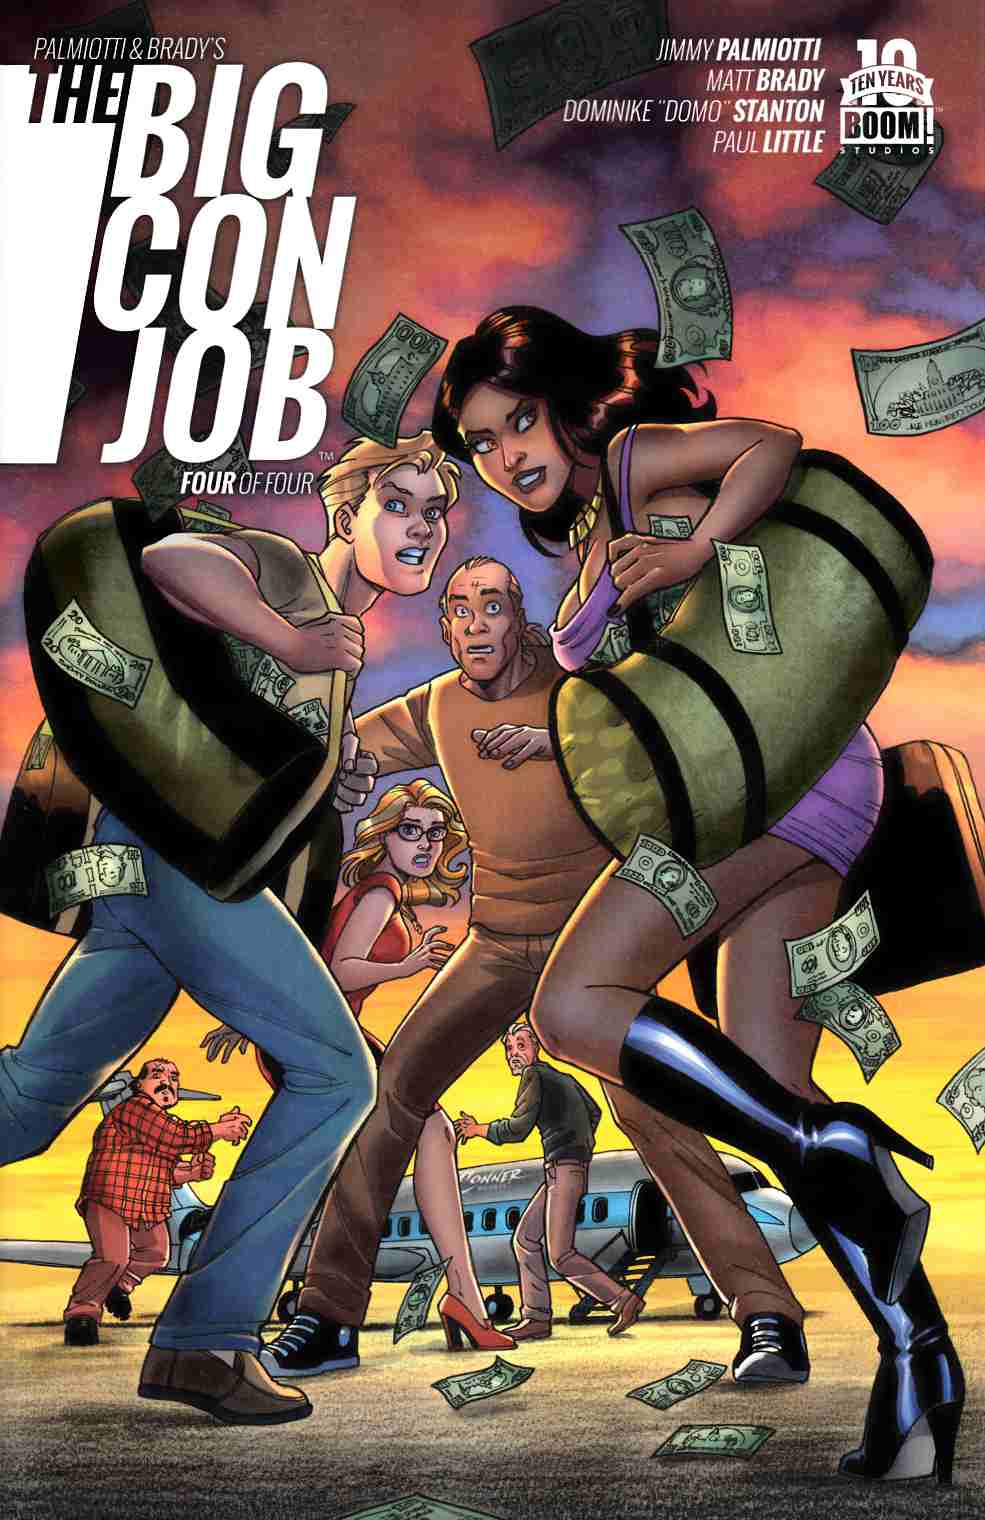 Palmiotti Brady Big Con Job #4 [Boom Comic] THUMBNAIL